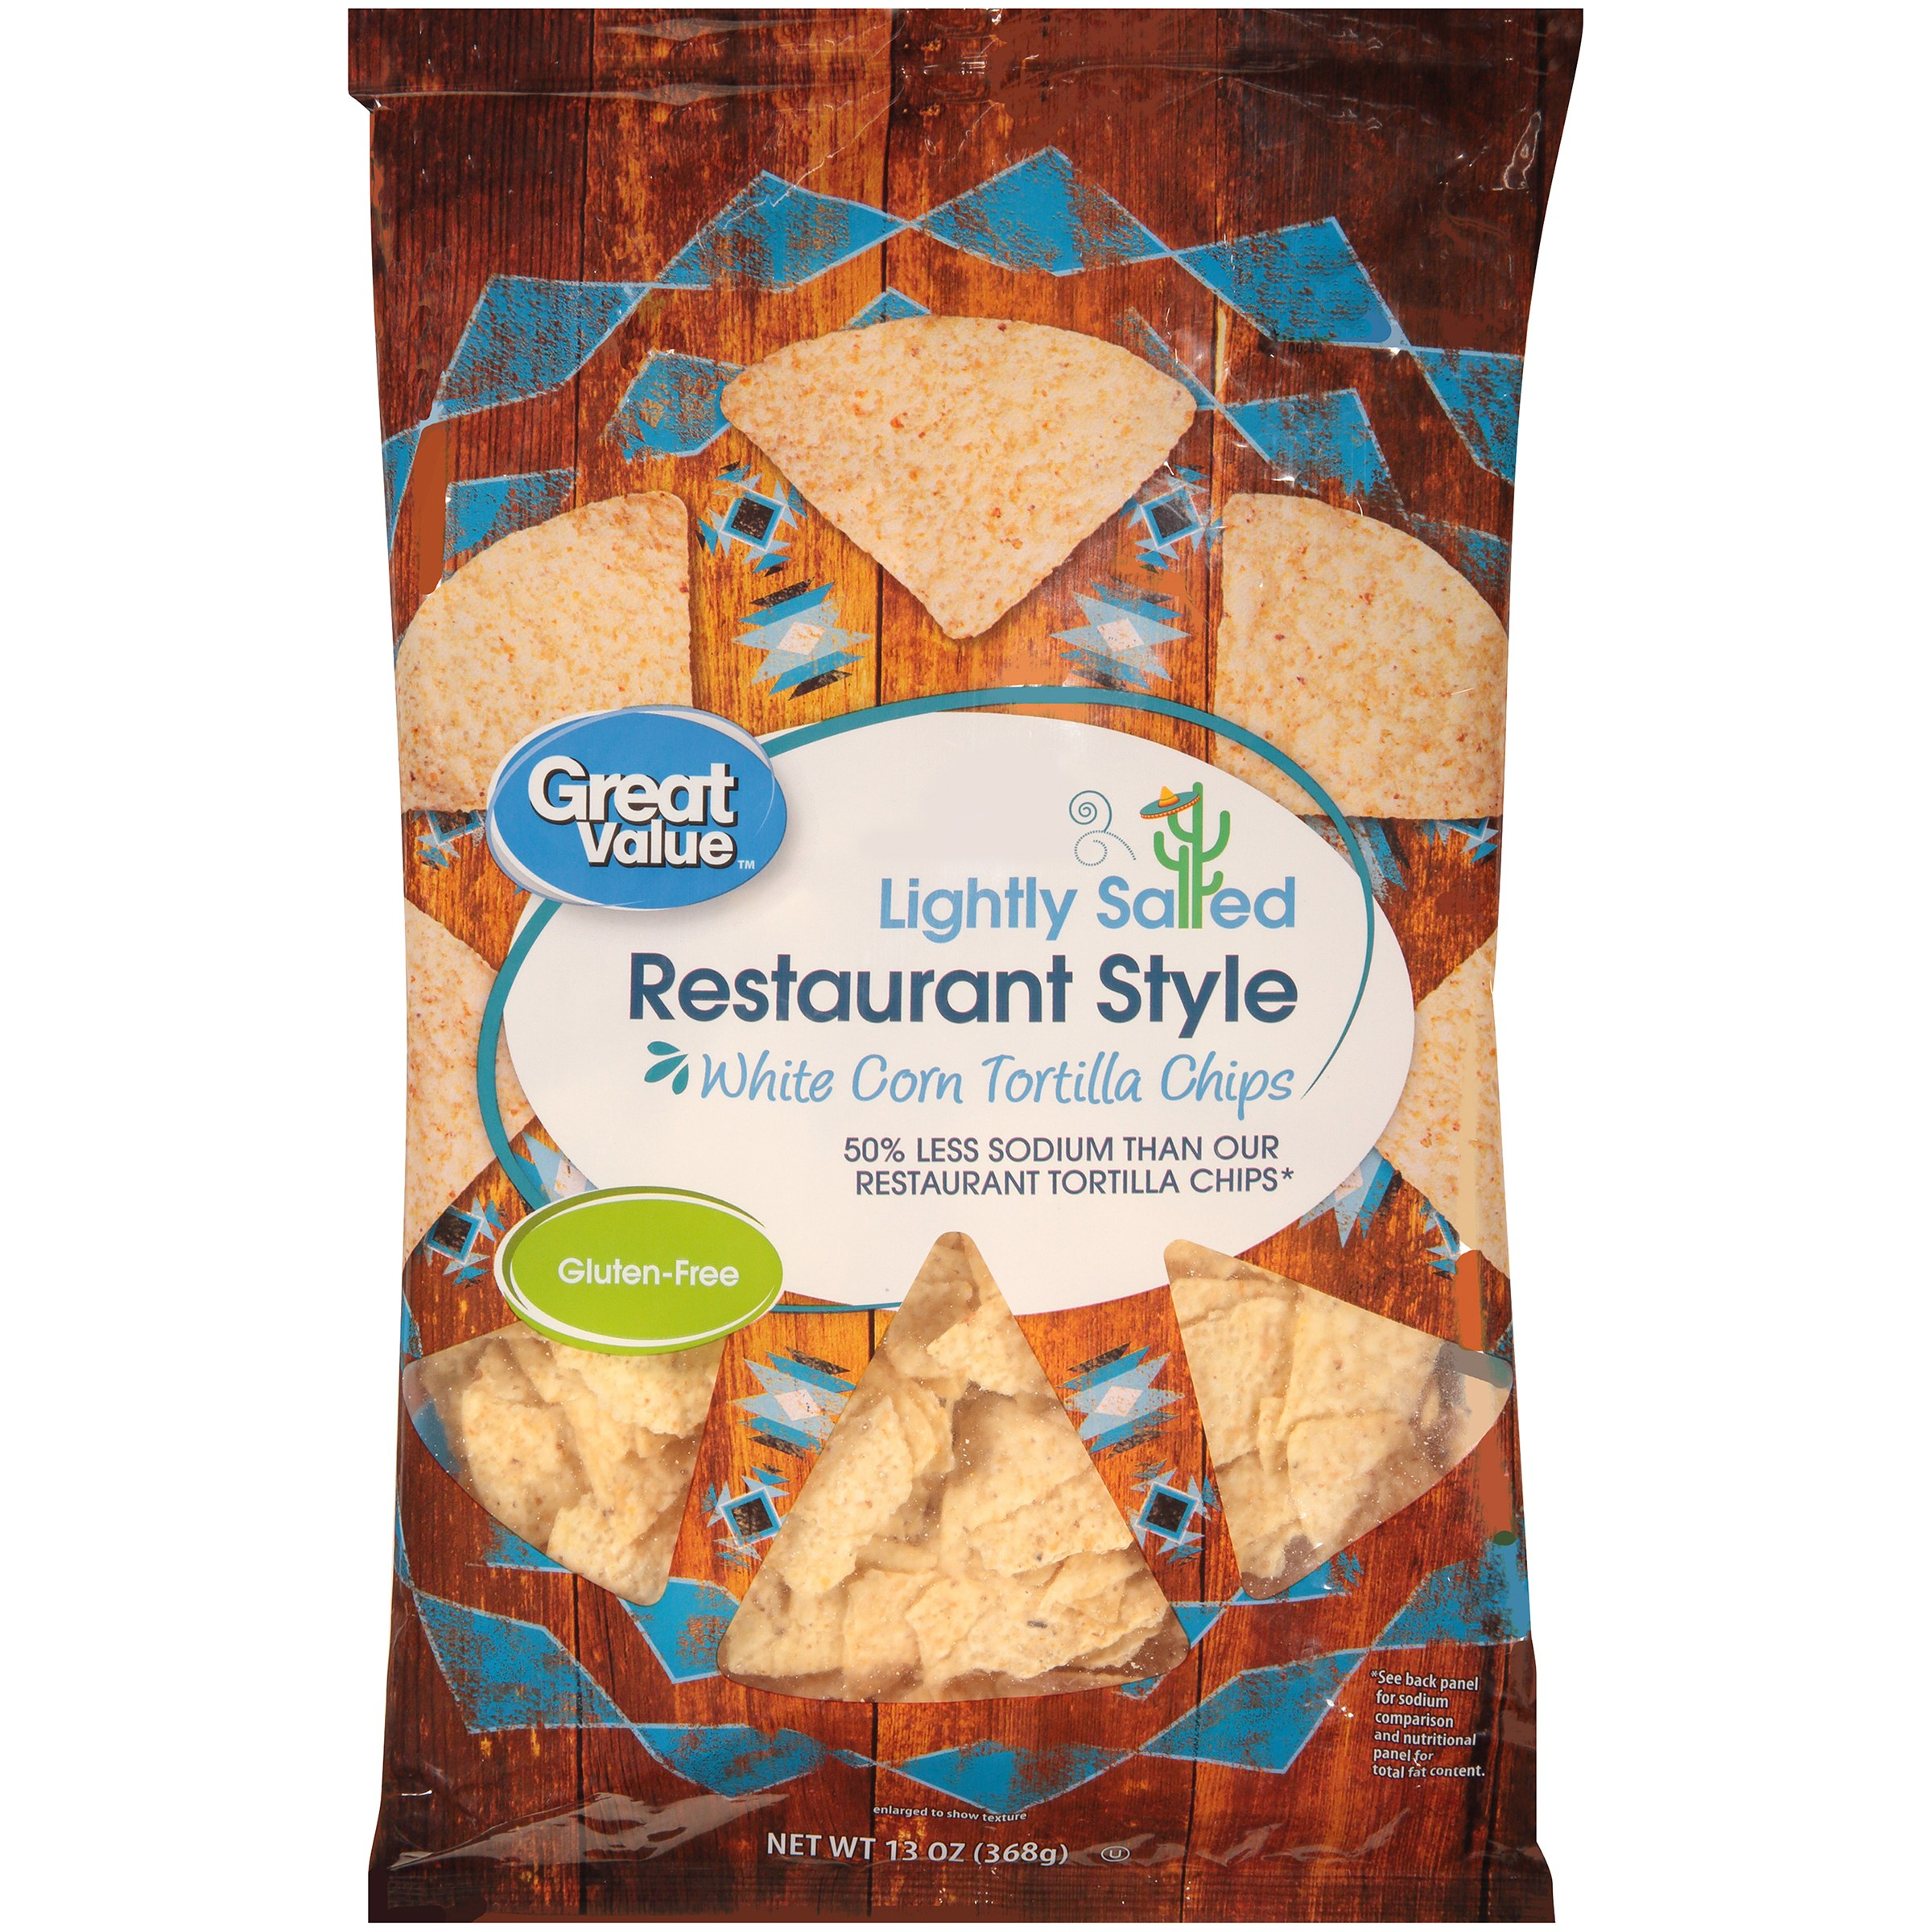 Great Value Restaurant Style White Corn Tortilla Chips 13 oz. Bag by Shearer'S Food Inc